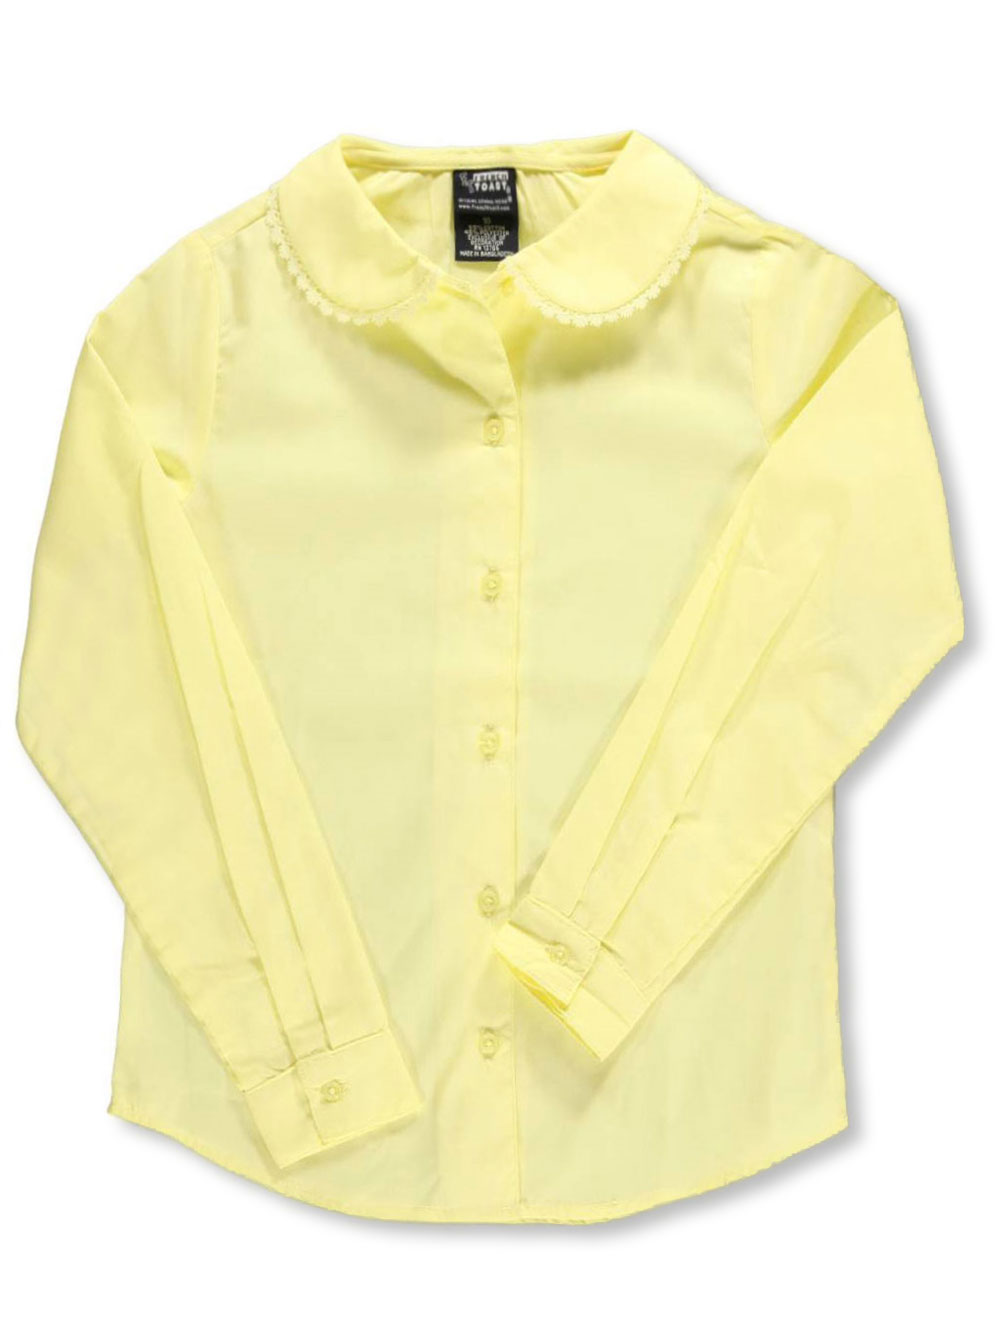 Image of French Toast School Uniform Big Girls LS Blouse with Lace Edging Sizes 7  16  yellow 12